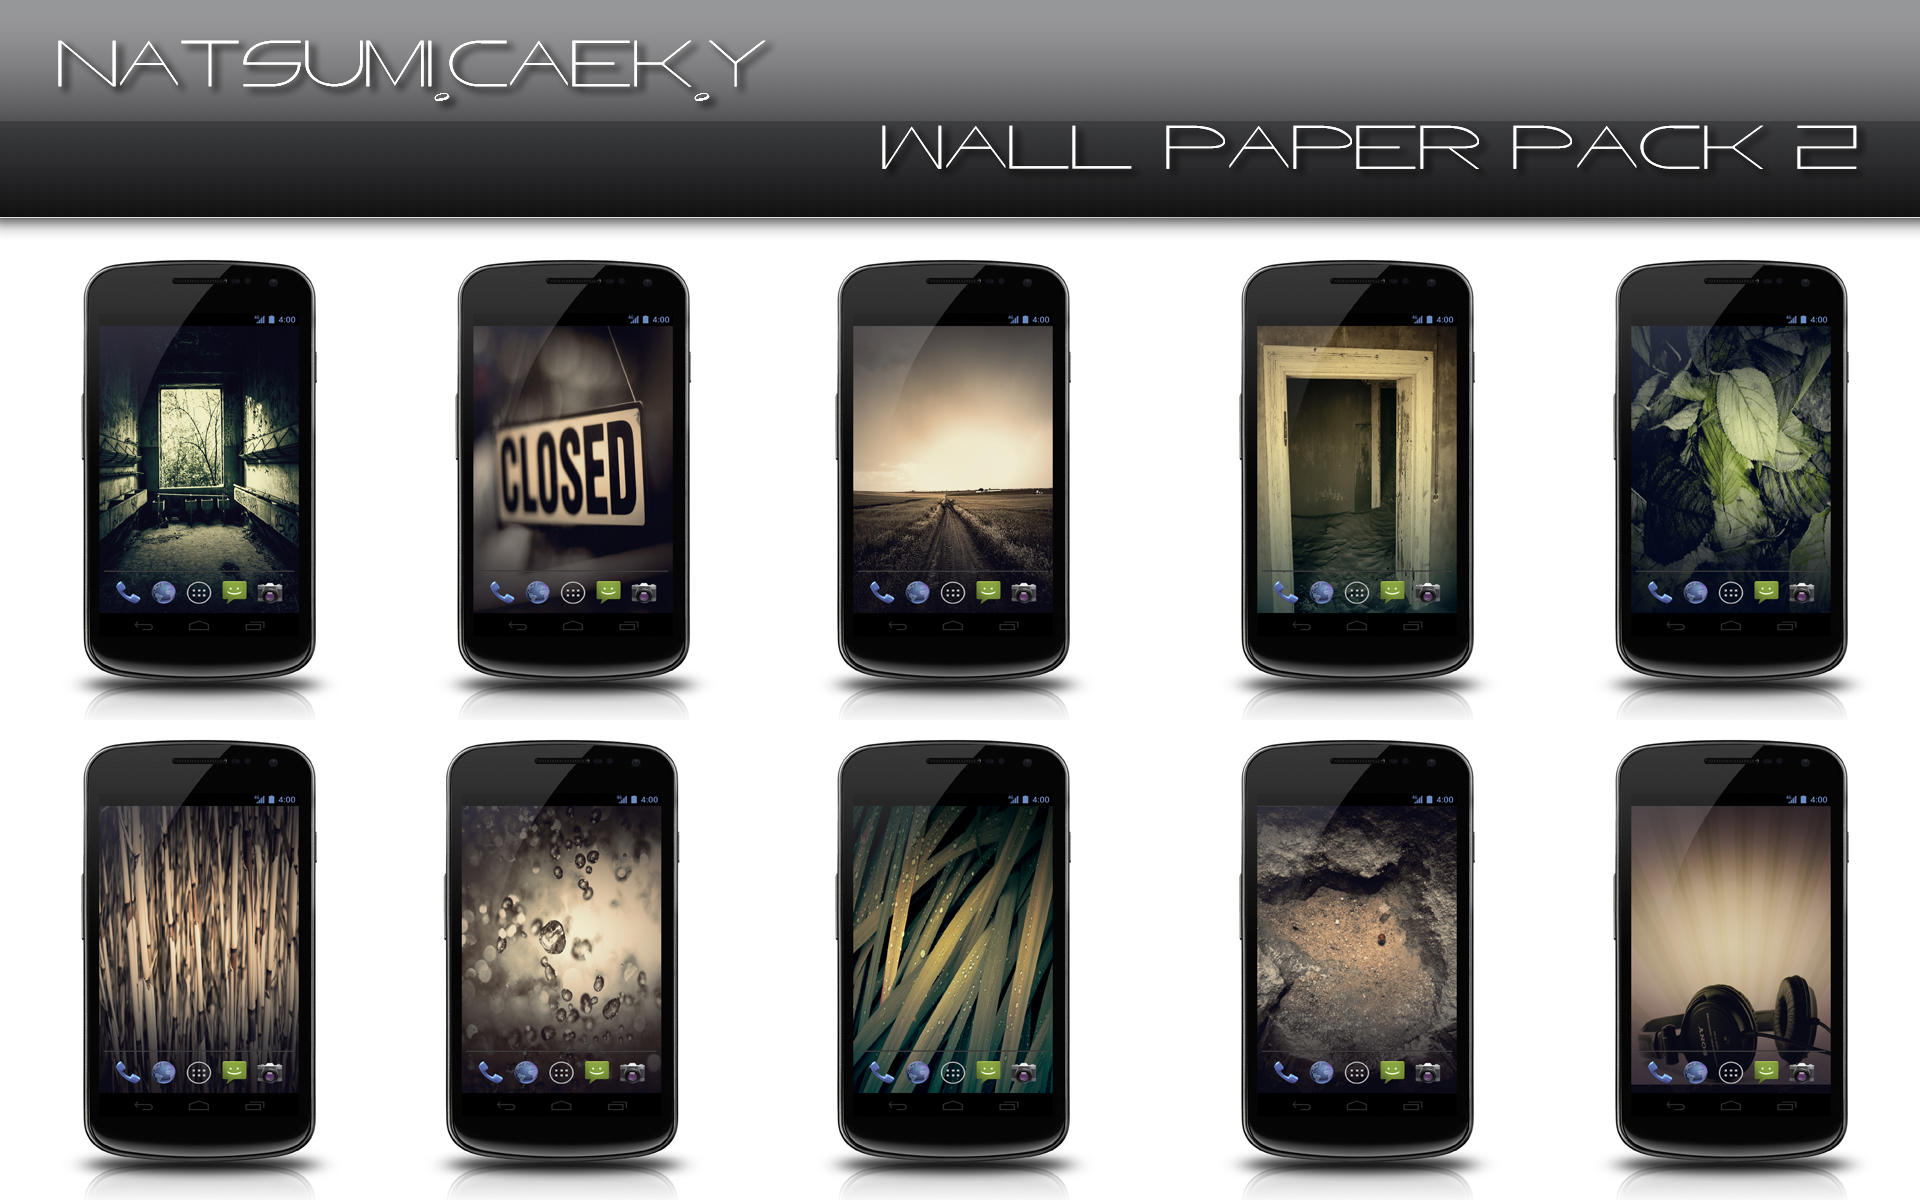 android phone wallpaper pack 2 by natsum i